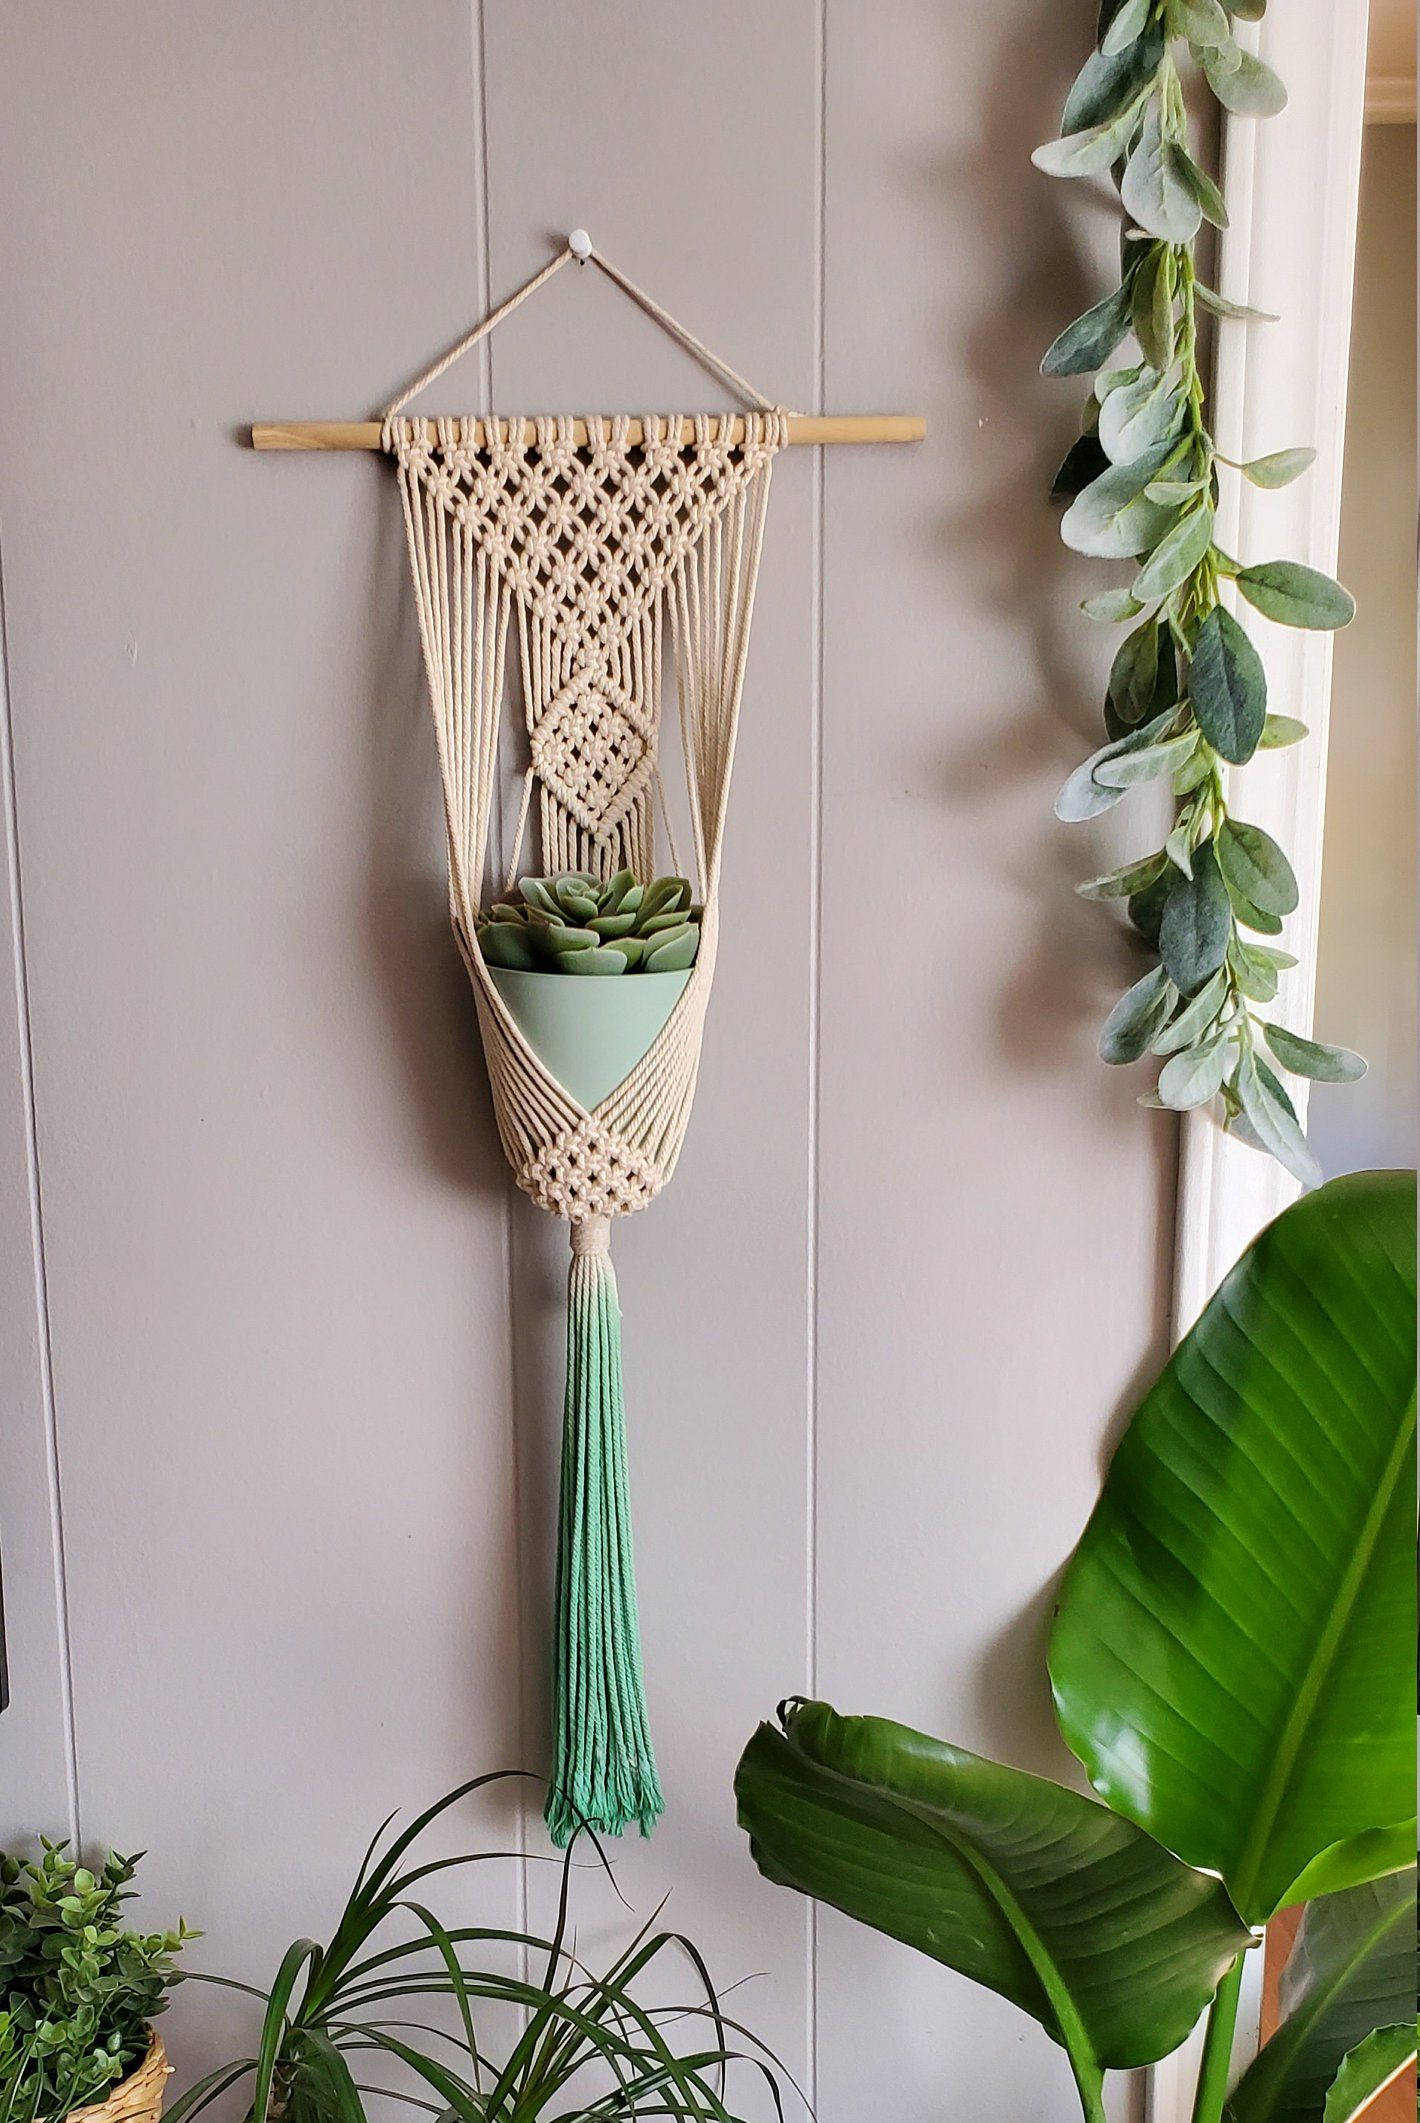 Clove Hitch Single Plant Hanger Macrame Plant Wall Hanging